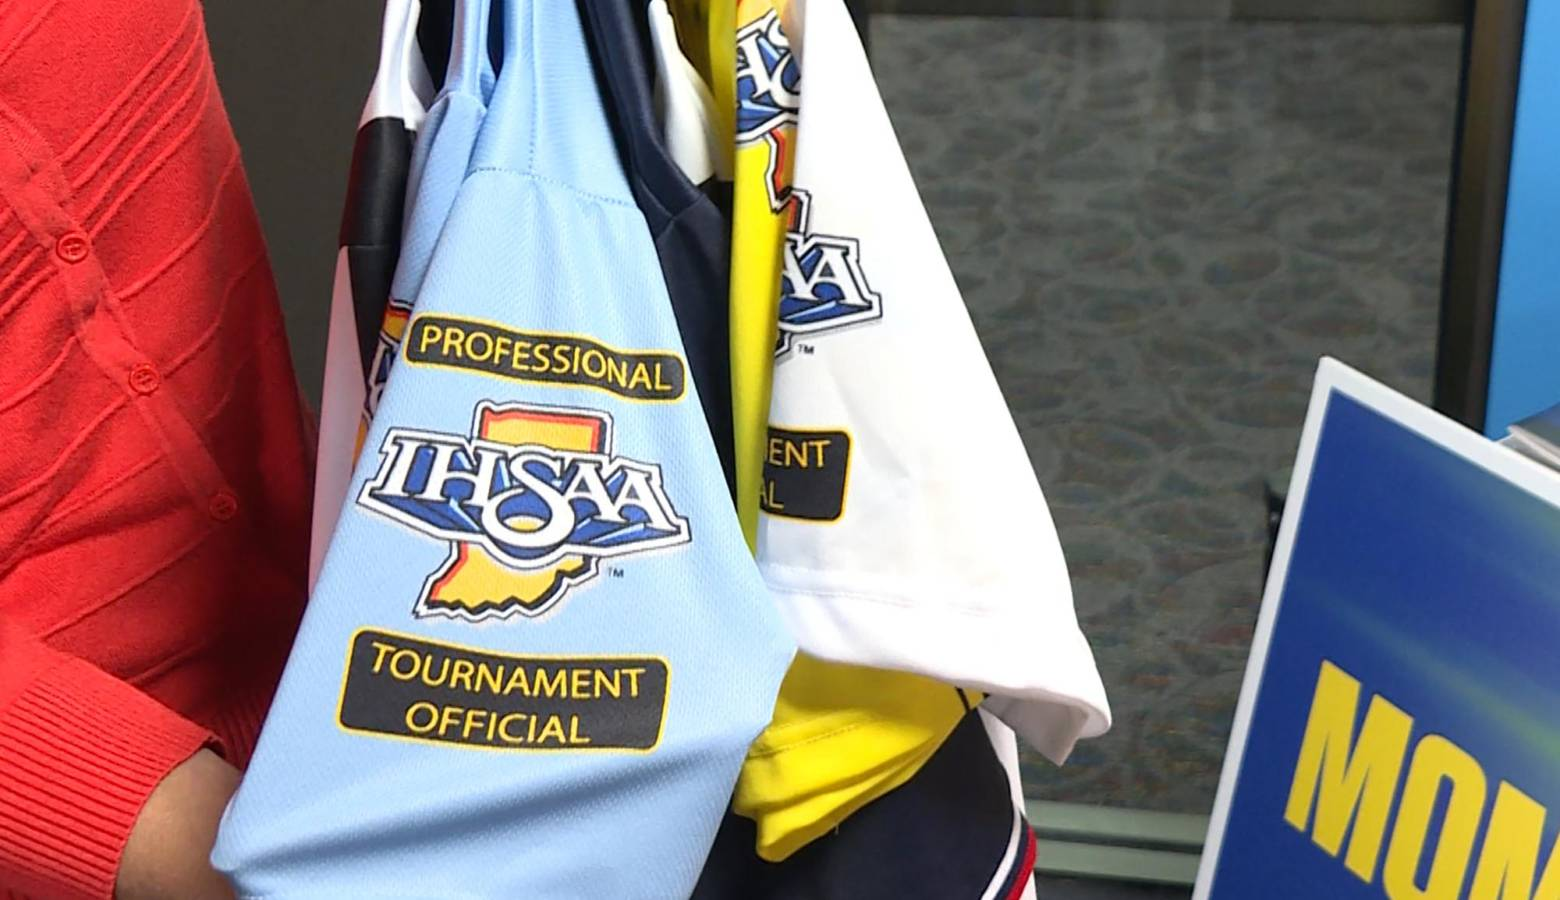 Officials have to make sure their uniforms are up to regulations, which is another expense adding to the pressure on officials already strapped for time and money. (Jeanie Lindsay/IPB News)